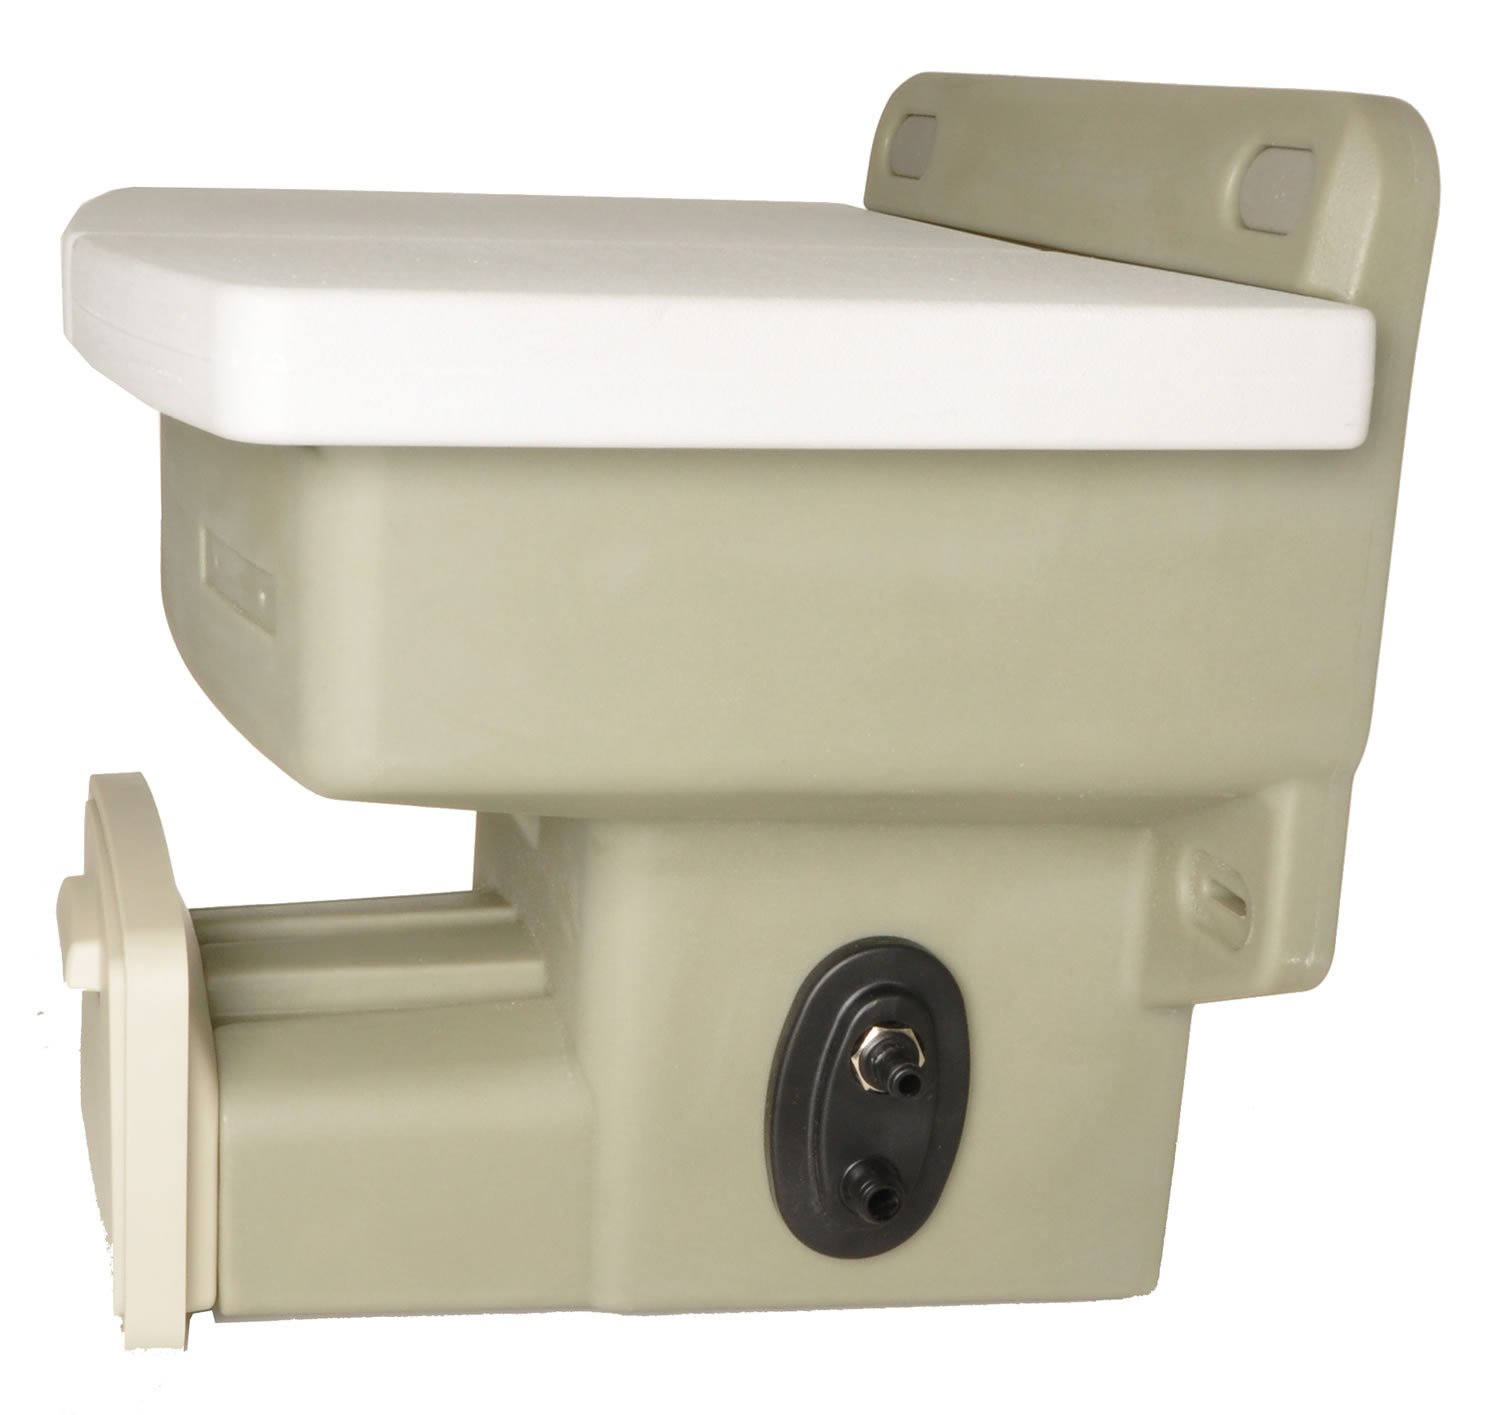 amazon com outdoor garden utility sink planting station with